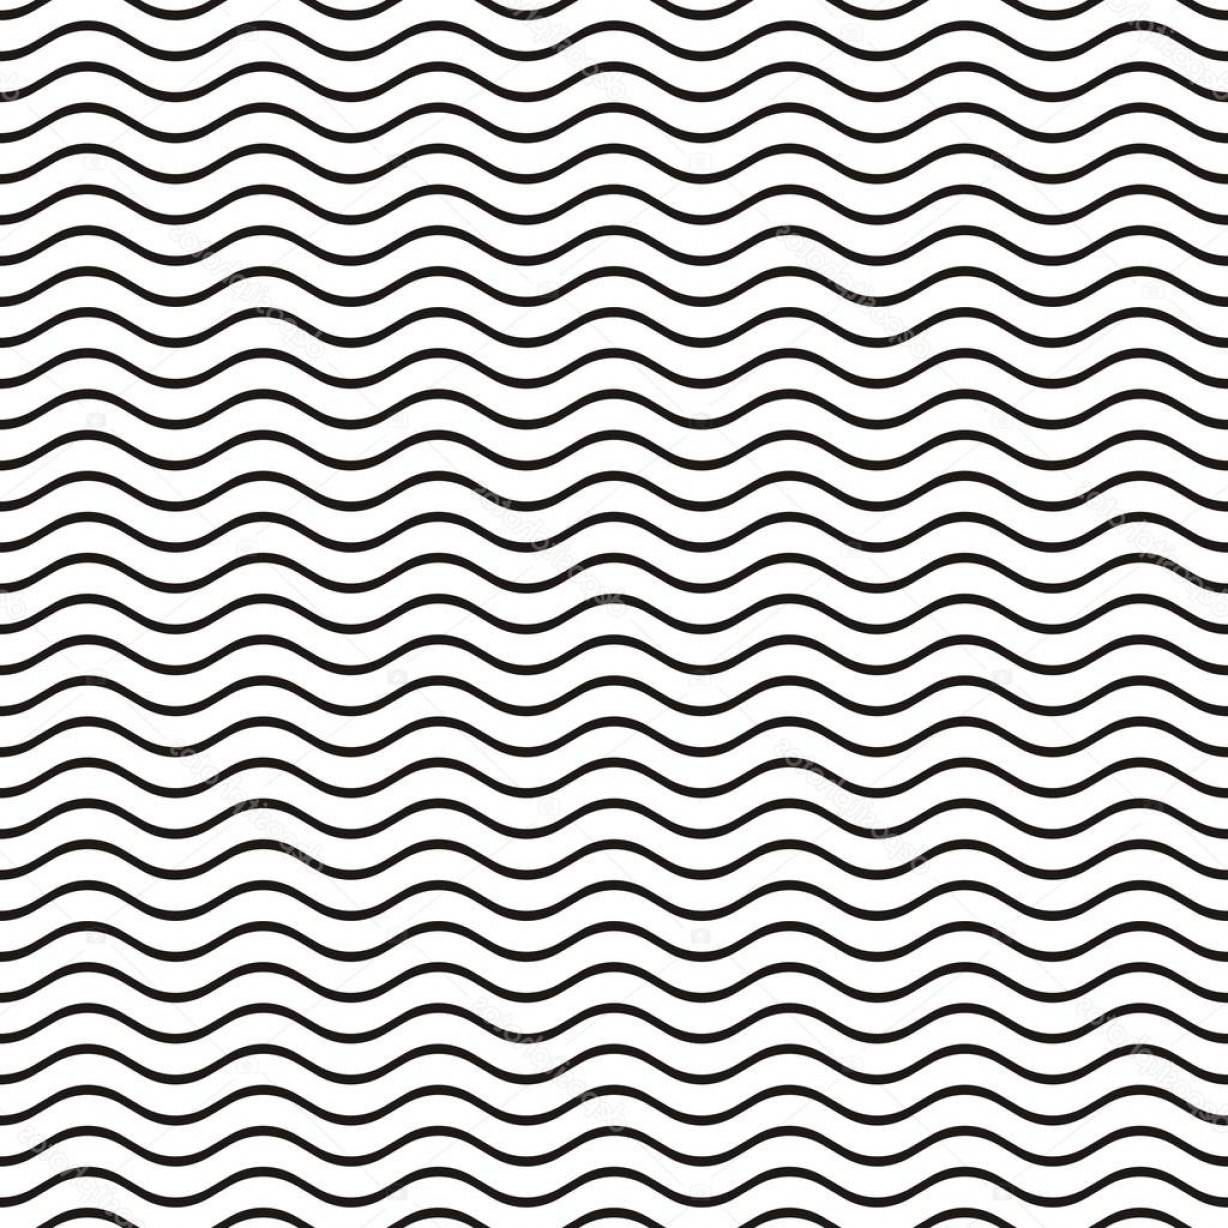 Wavy Line Illustrator Vector: Stock Illustration Seamless Wavy Line Pattern